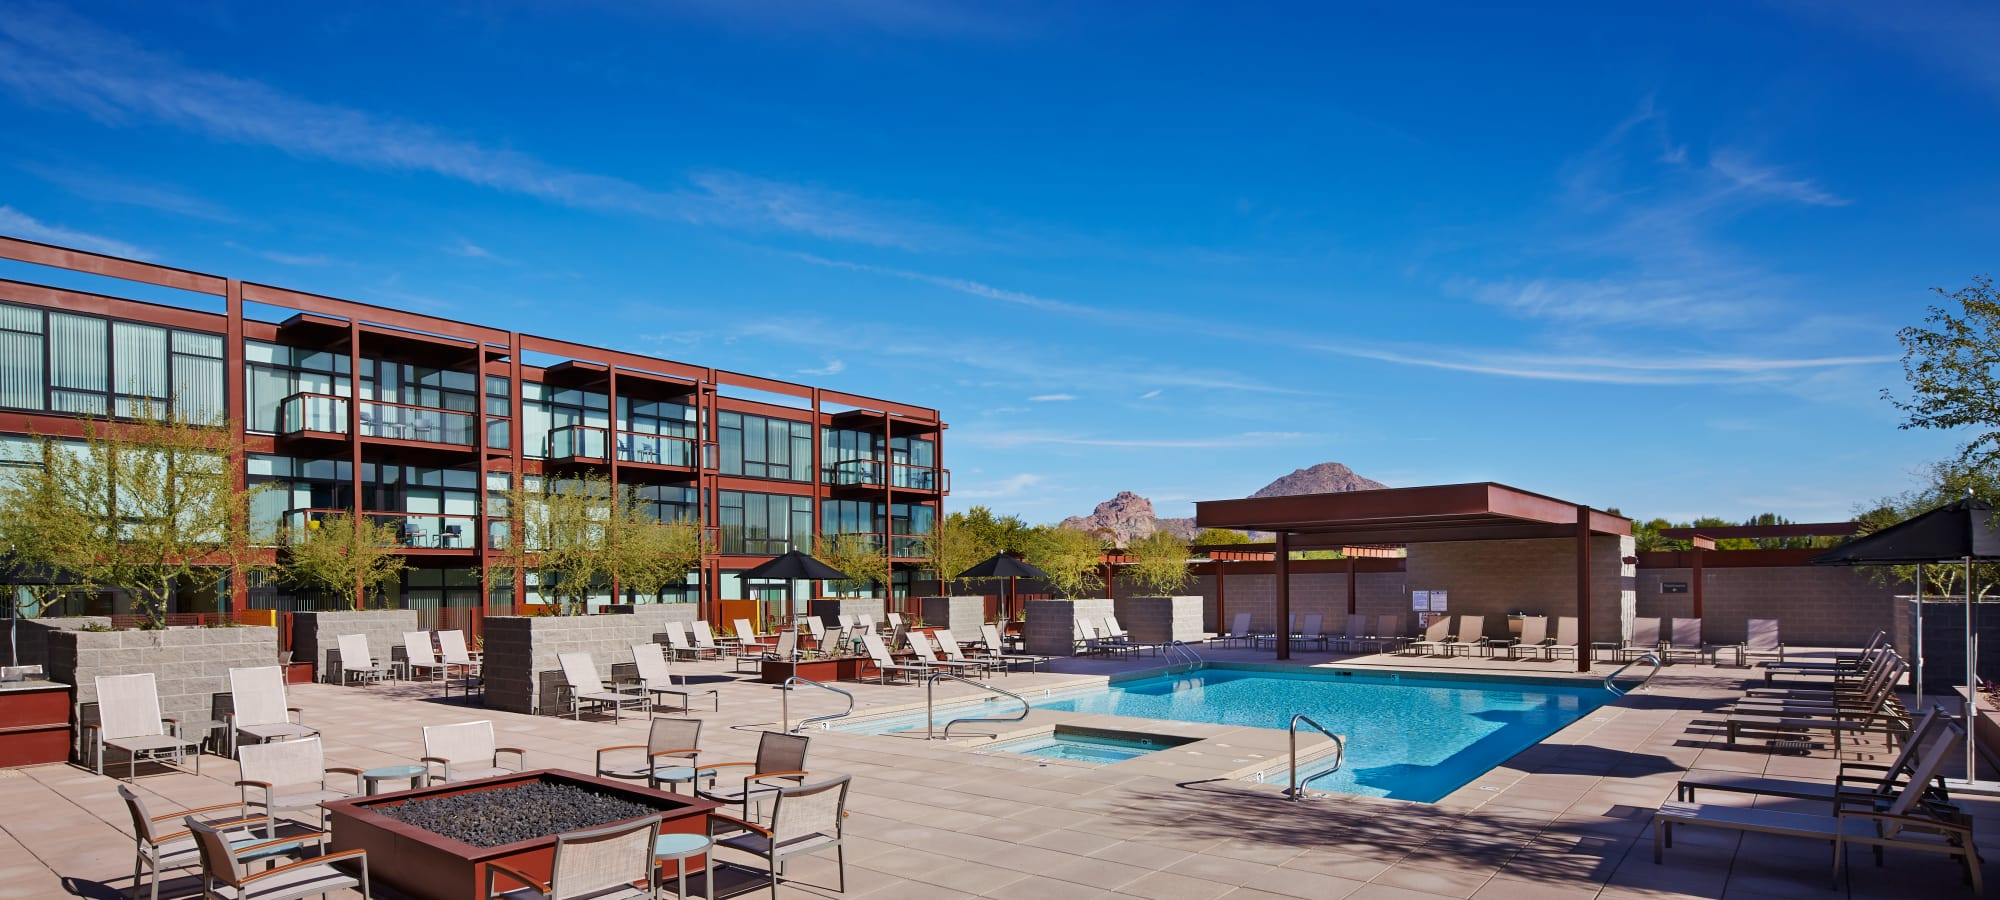 Swimming pool area with chaise lounge chairs at Domus in Phoenix, Arizona